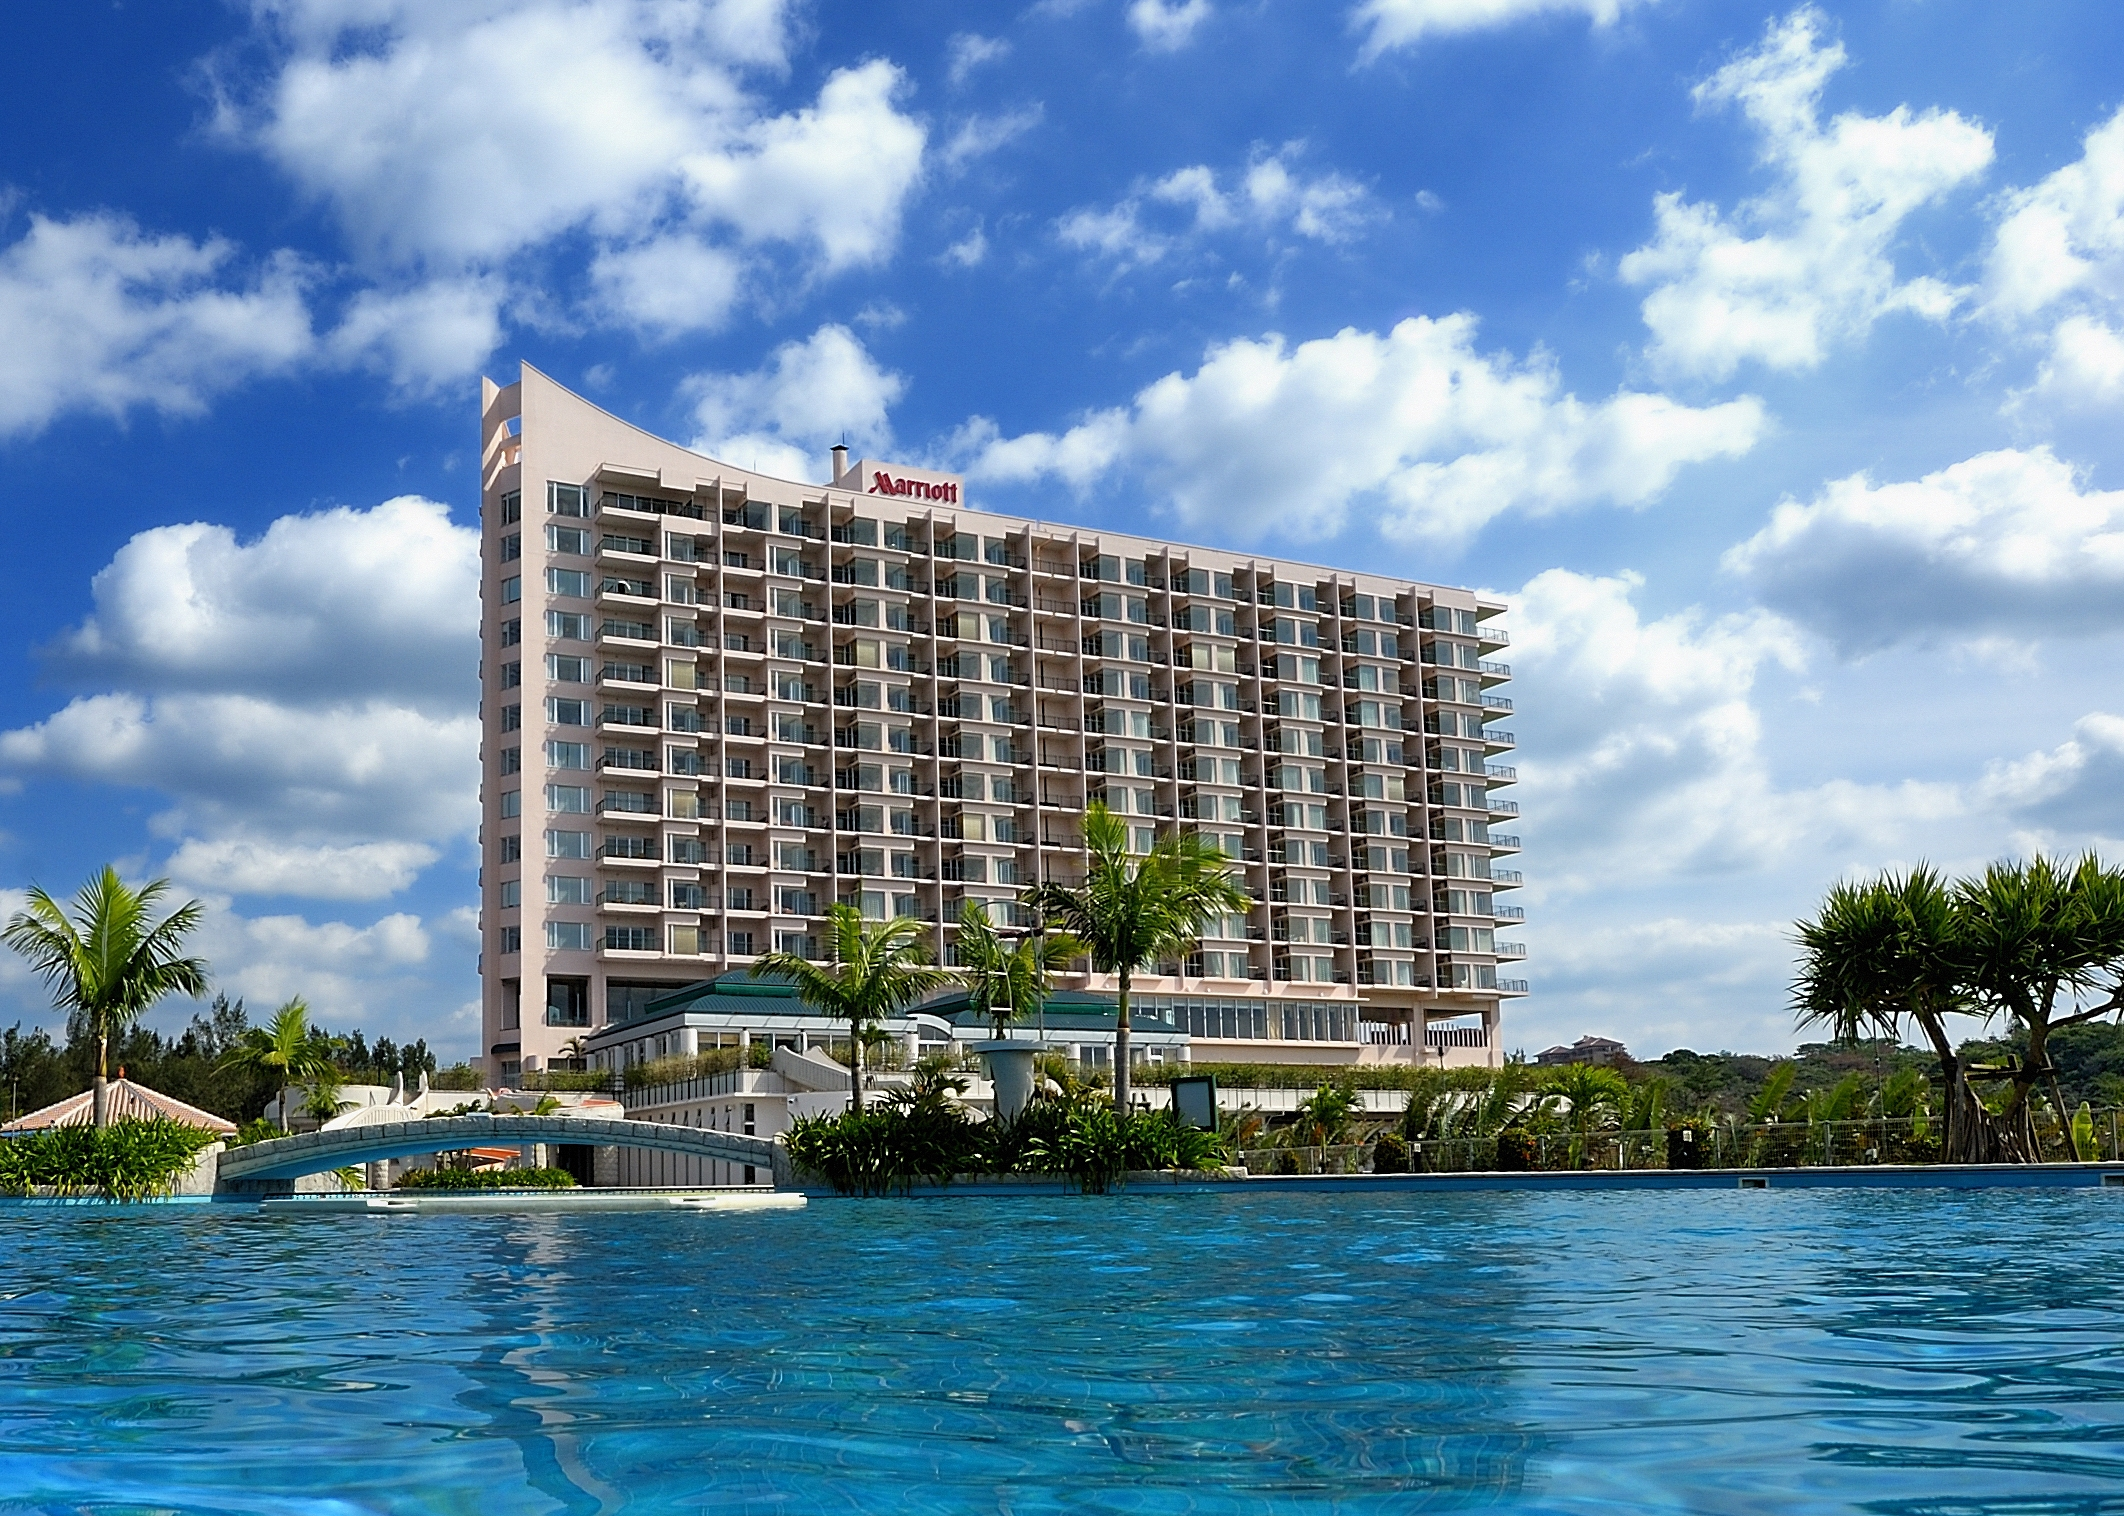 OKINAWA MARRIOTT RESORT&SPA